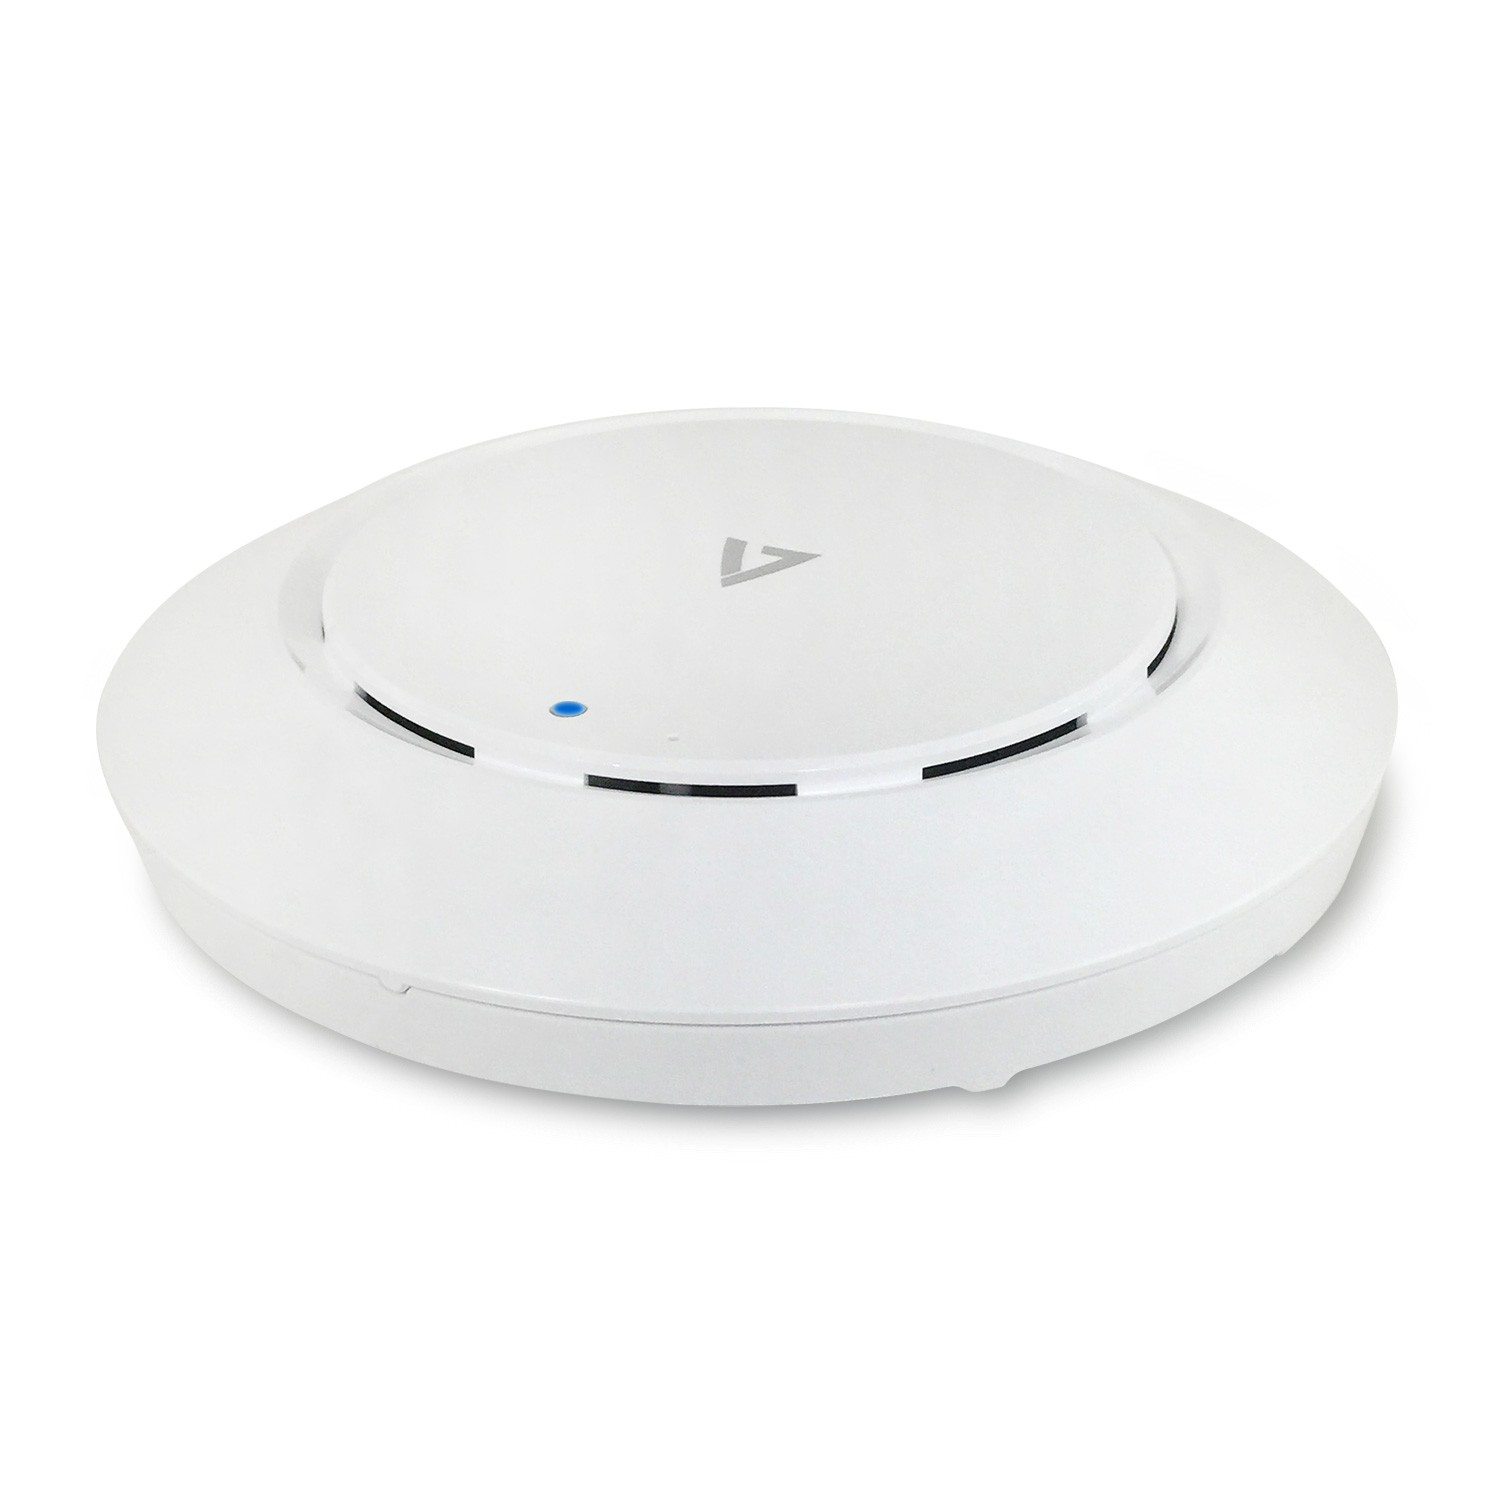 V7 AC1200 Dual Band Access Point